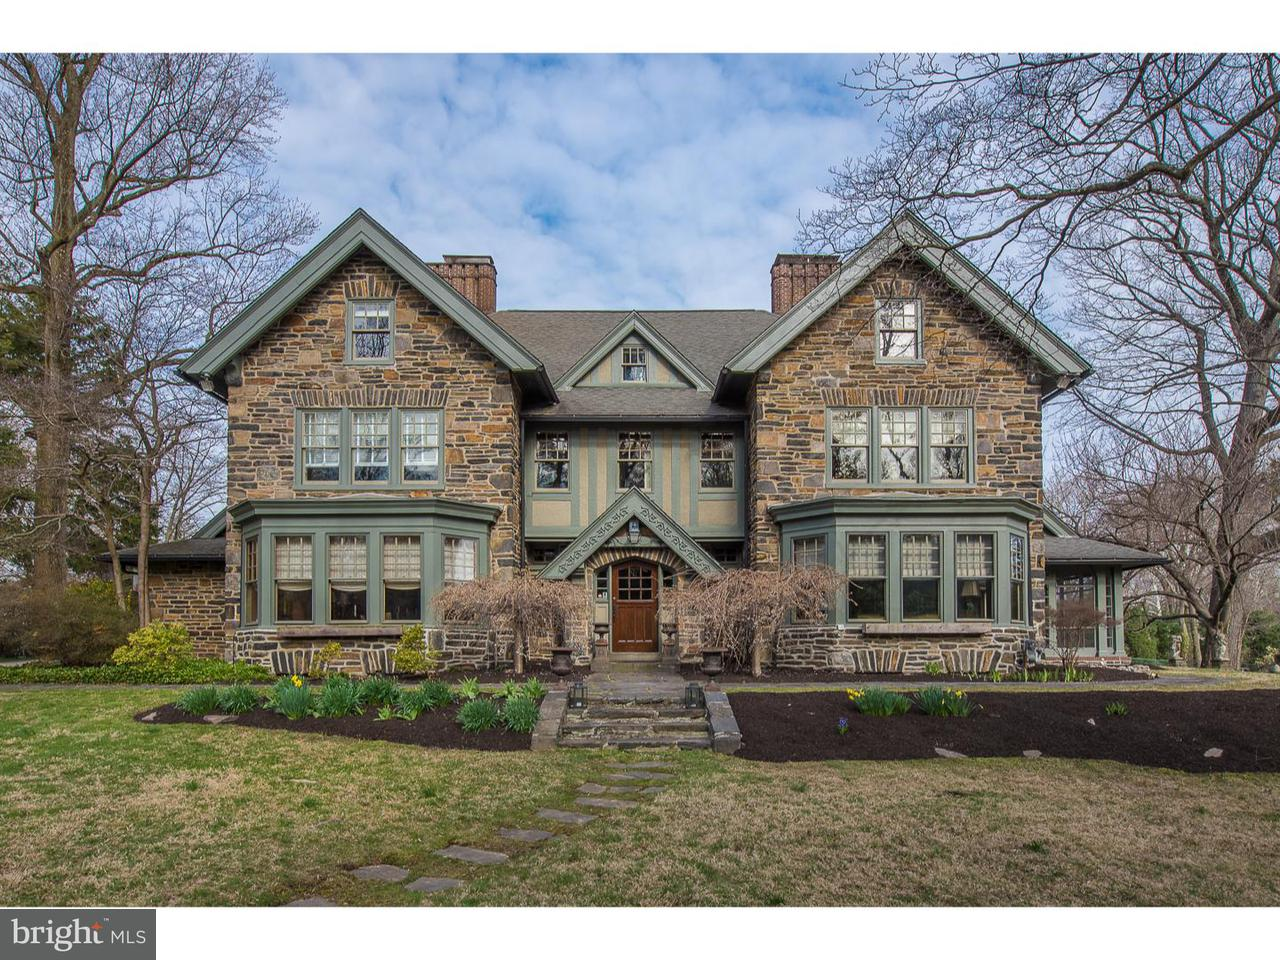 Single Family Home for Sale at 307 CLWYD Road Bala Cynwyd, Pennsylvania 19004 United States